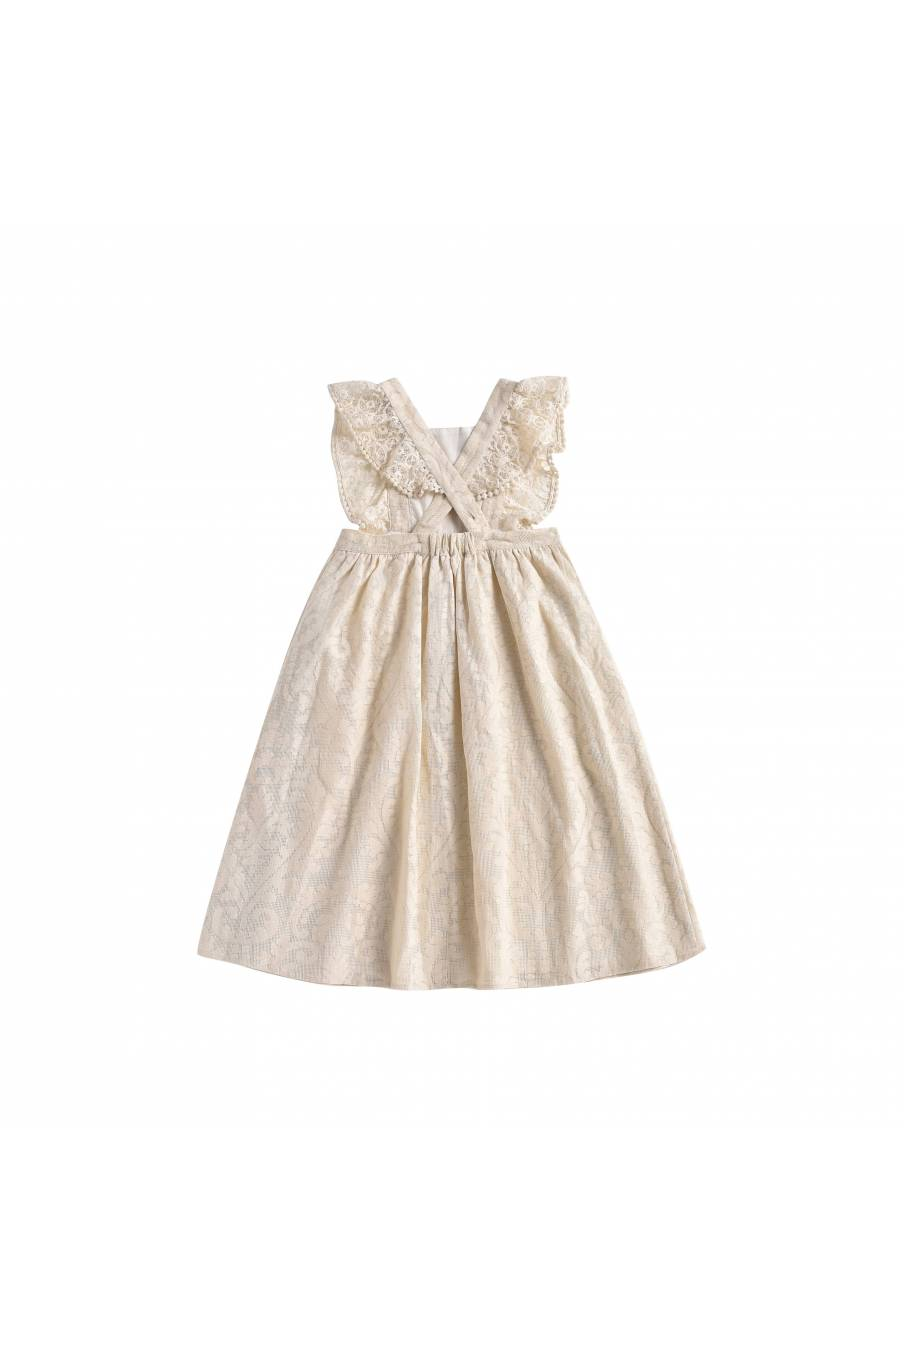 Dress Cosala Cream Baroque Lace